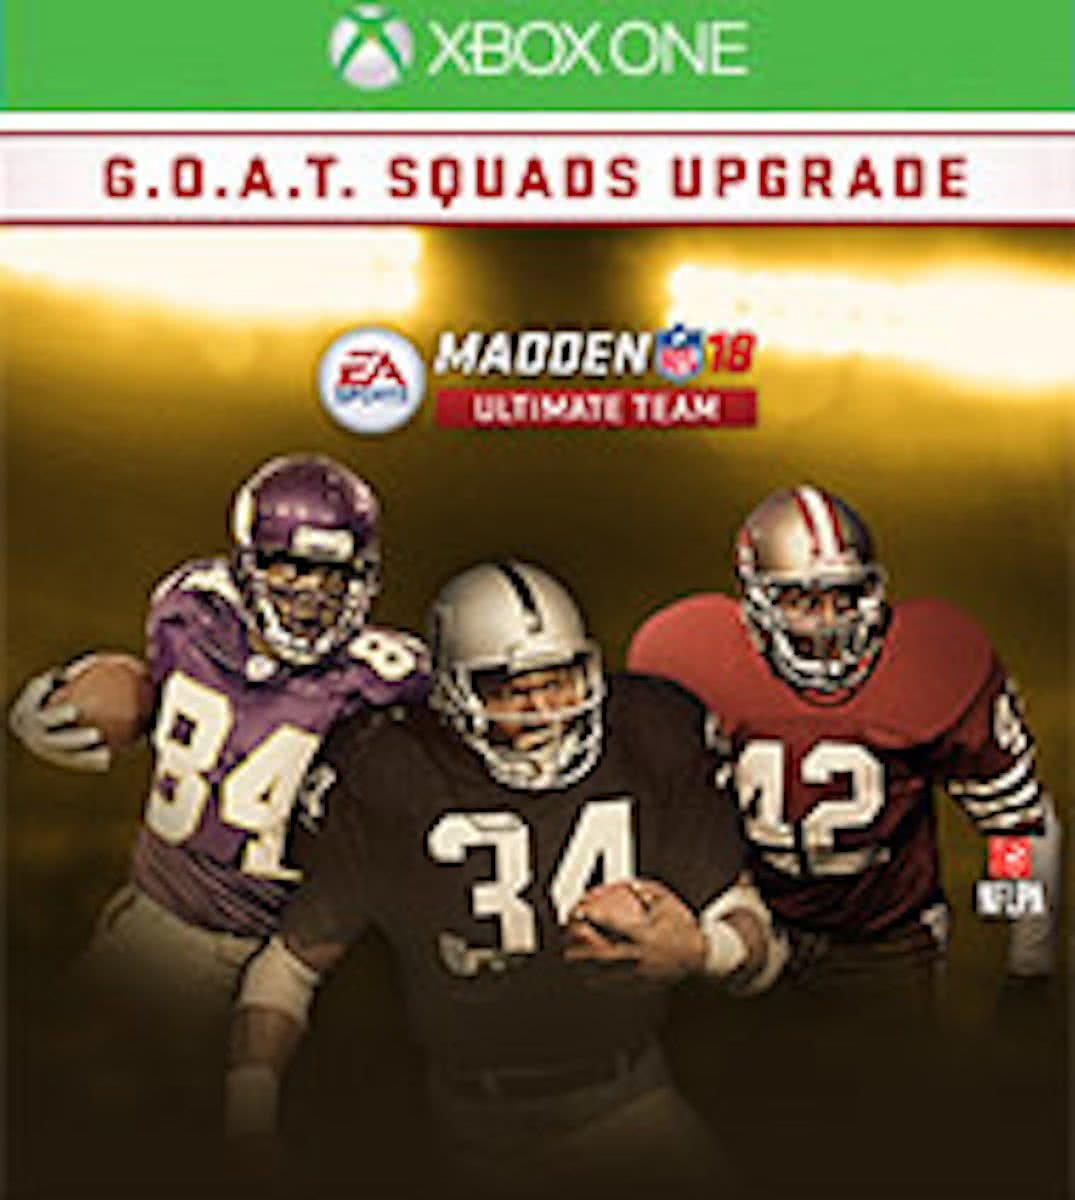 Madden NFL 18 - G.O.A.T. Squads Upgrade - Add-on - Xbox One